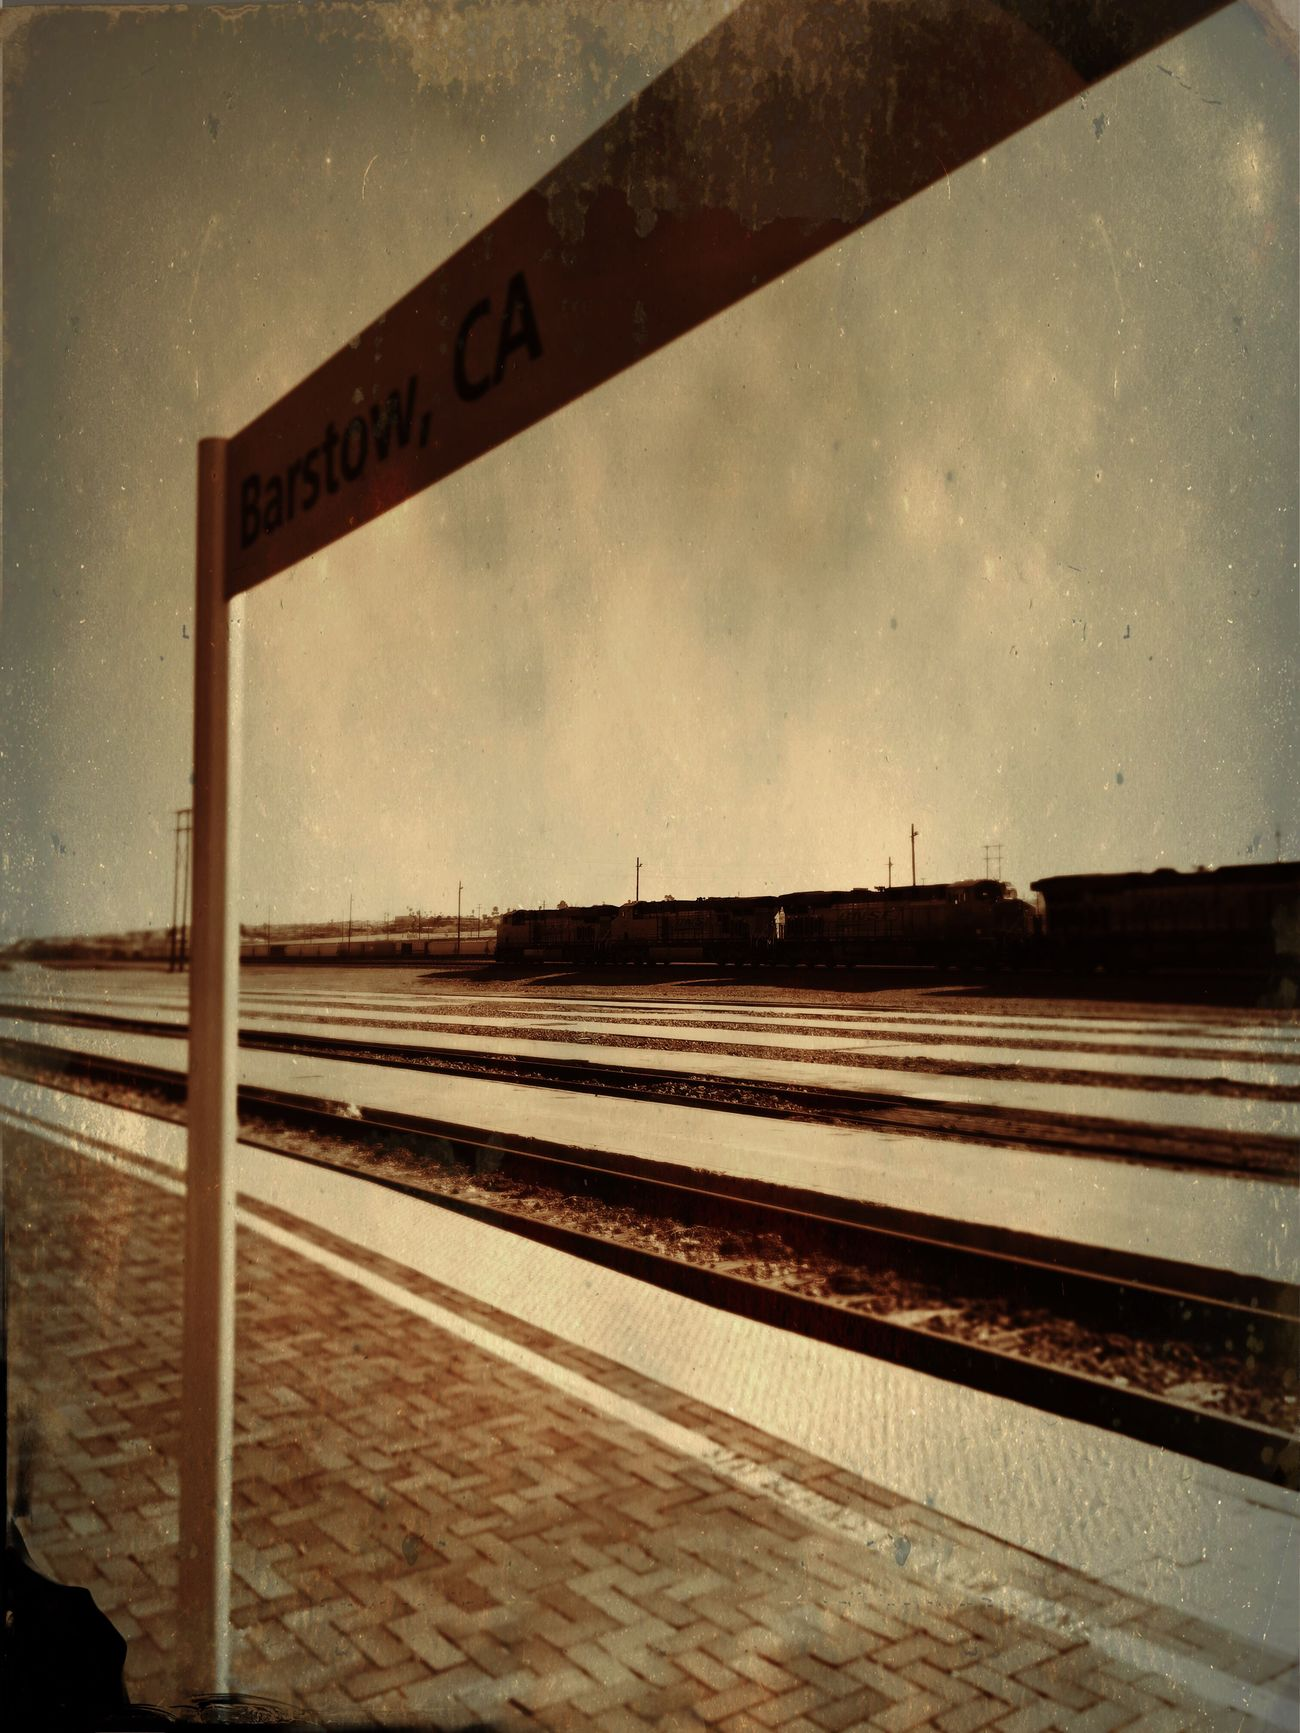 Traveling Barstow Barstow, Ca Railroad Station Railroad Station Platform Transportation Rail Transportation Railroad Track Travel Destinations Train Museum Trainphotography Train Train Tracks Train Station Sepiatone Sepia Photography Sepia_collection Sepia Train Cars